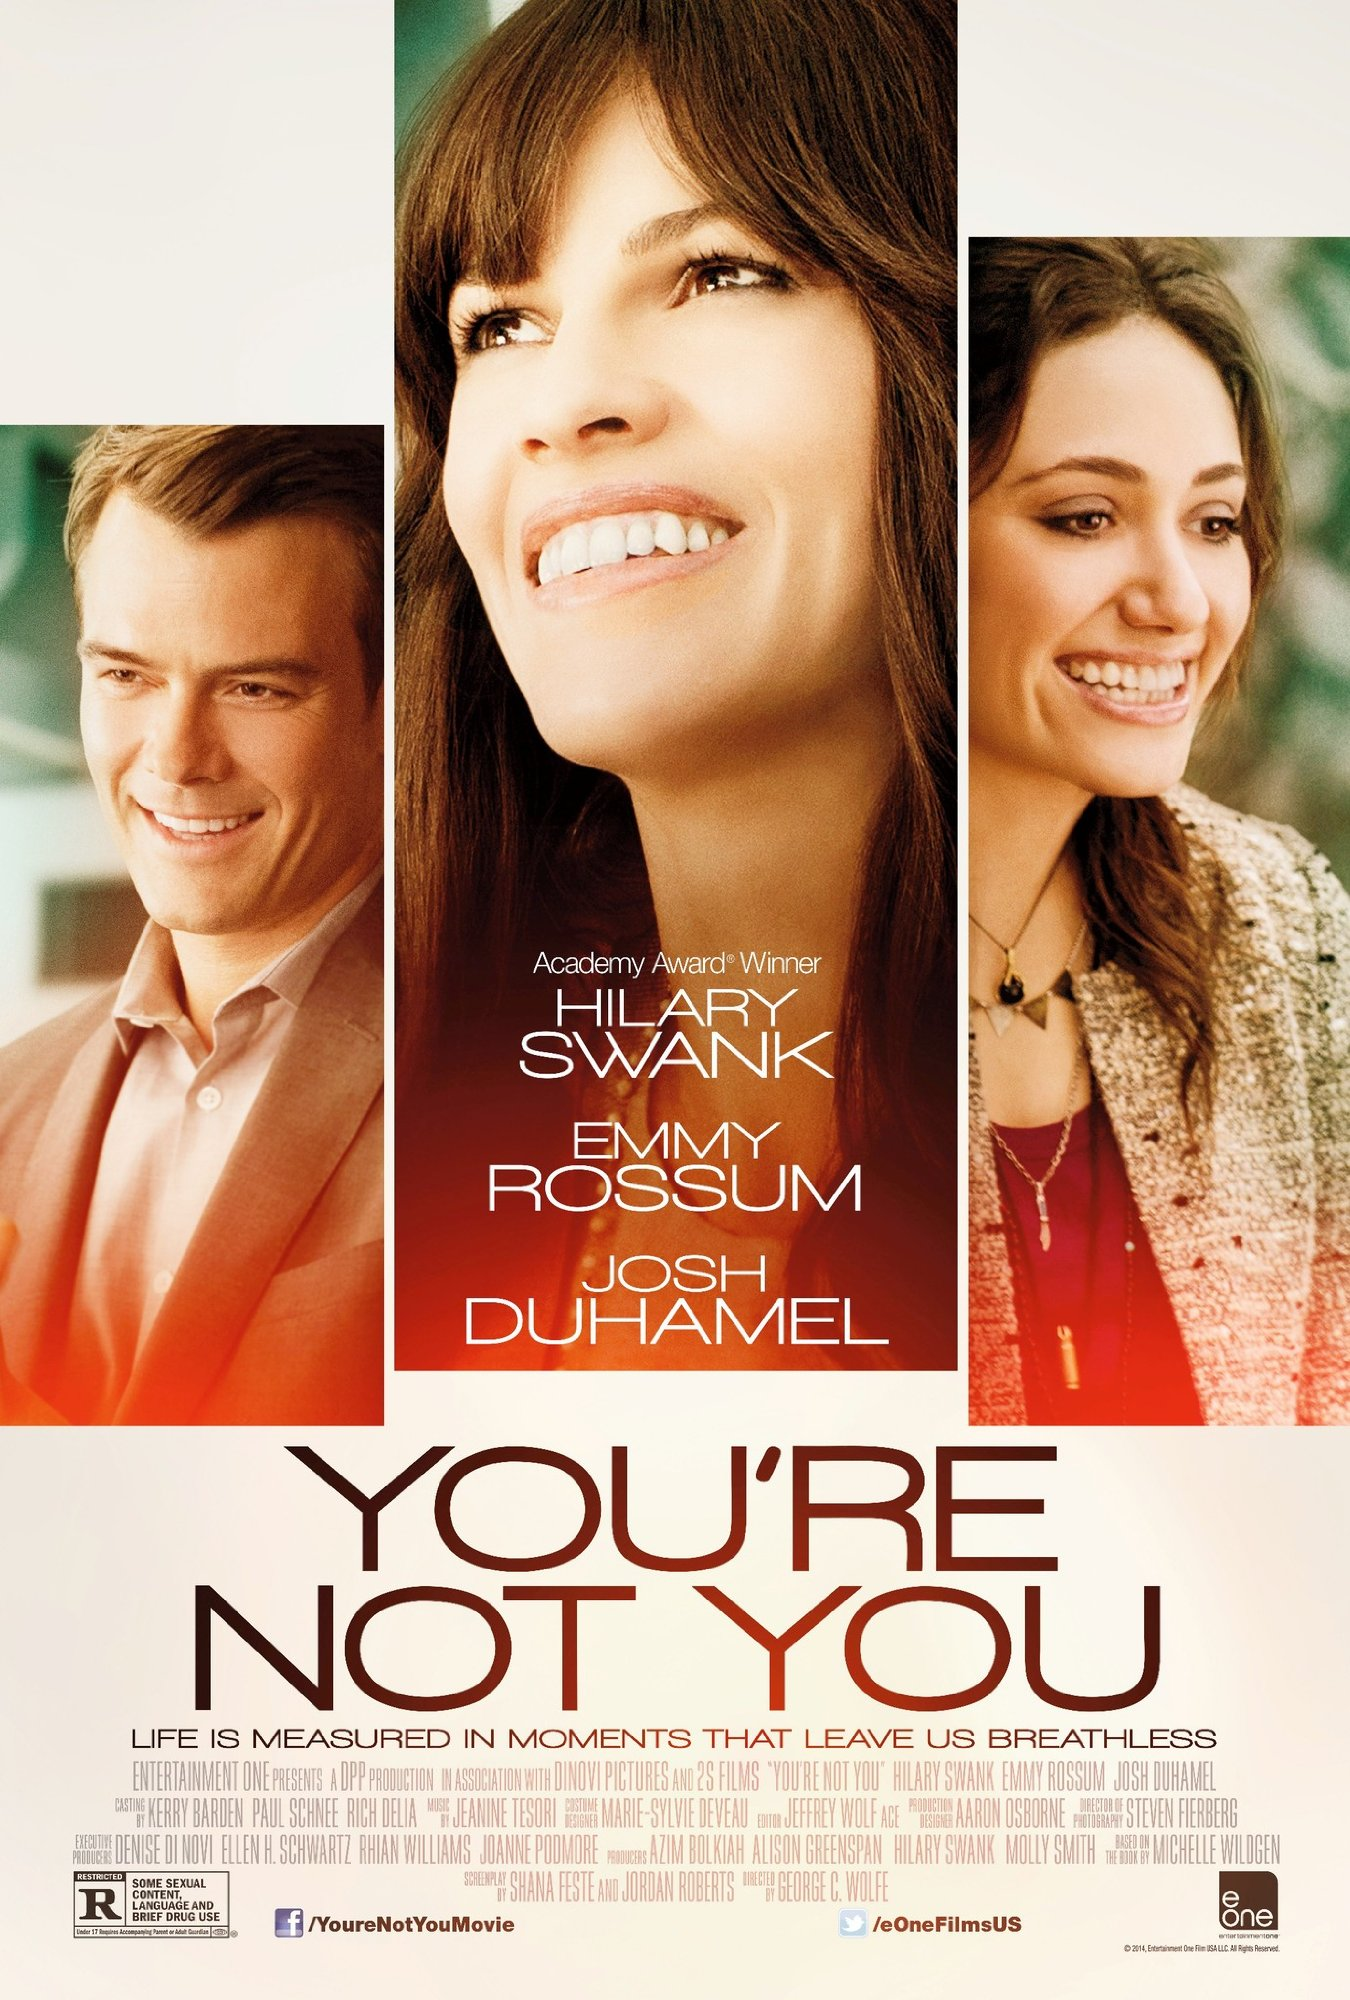 YOU'RE NOT YOU-Official Poster Banner PROMO-07OUTUBRO2014-00